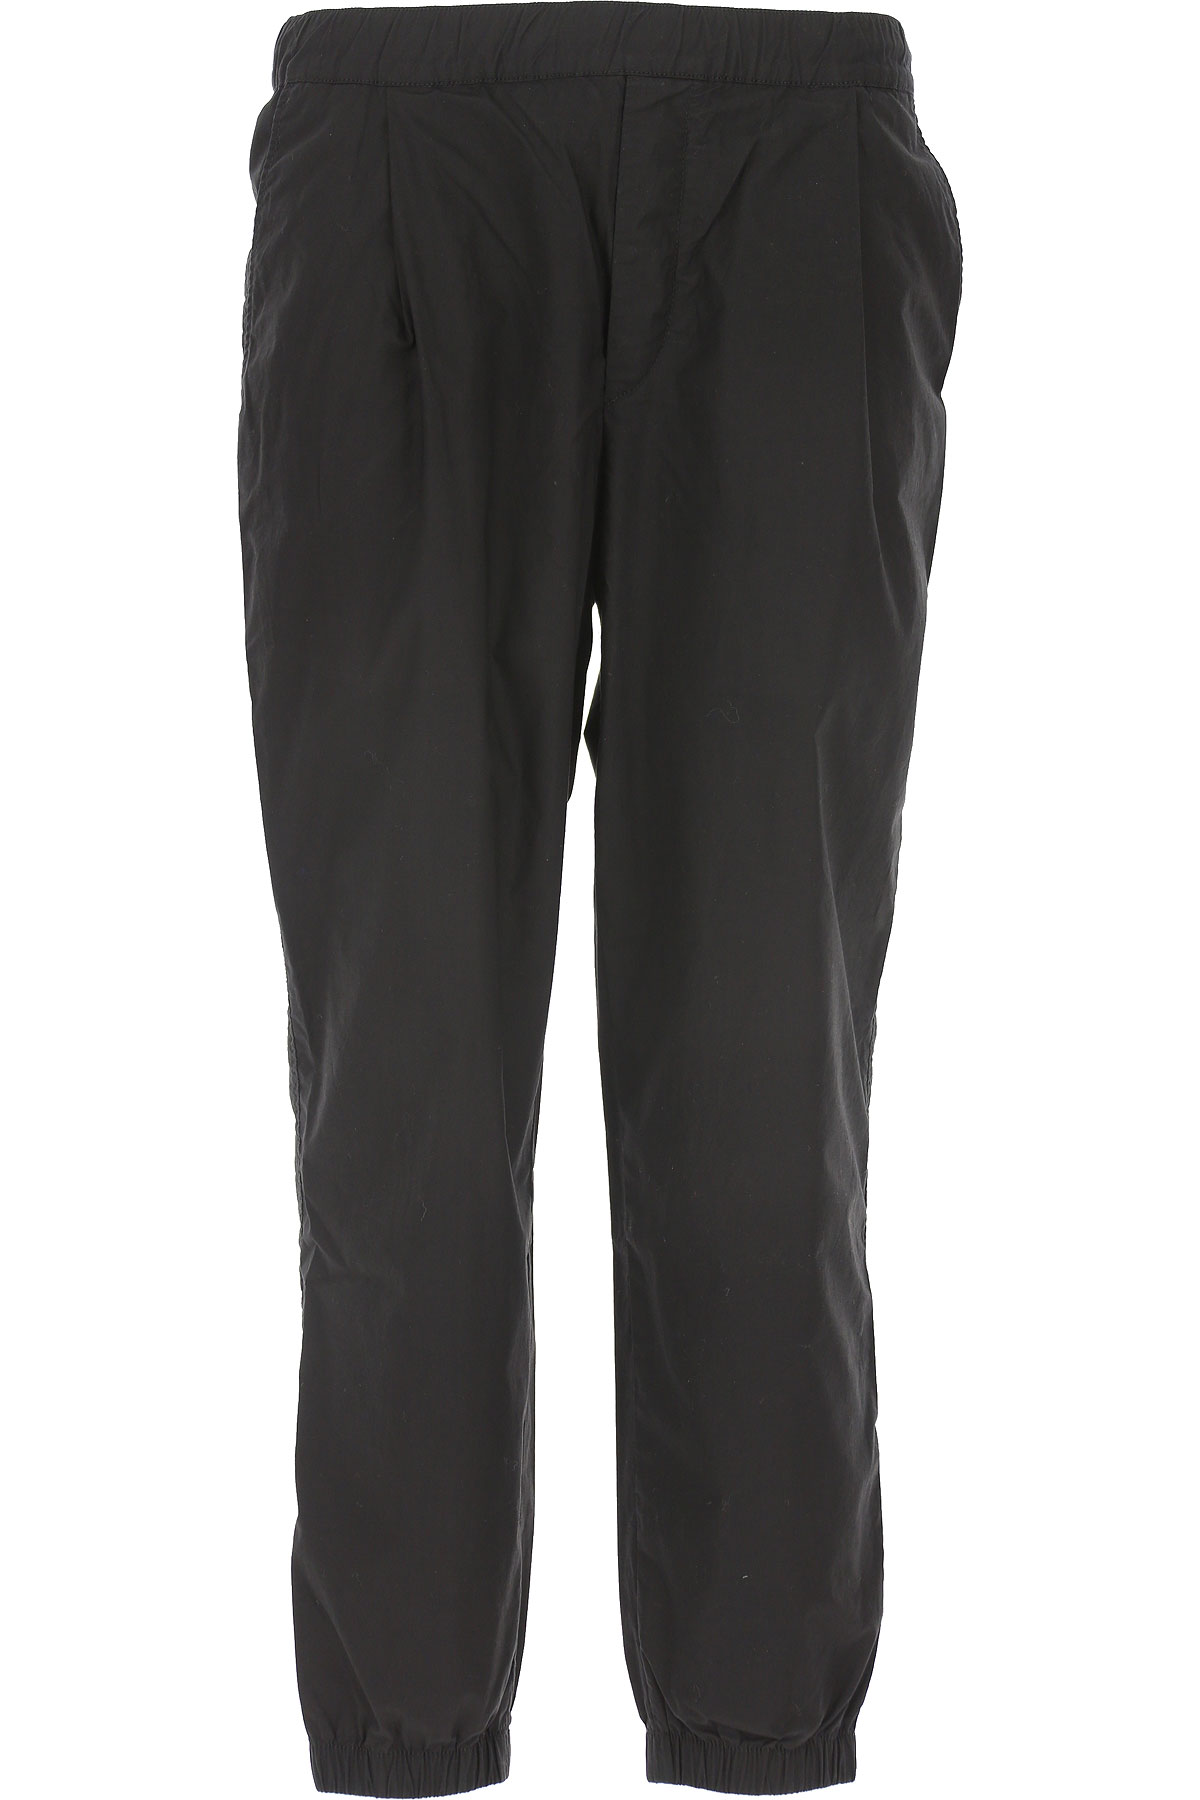 Alexander McQueen McQ Pants for Men On Sale in Outlet, Black, polyester, 2019, 30 32 36 L